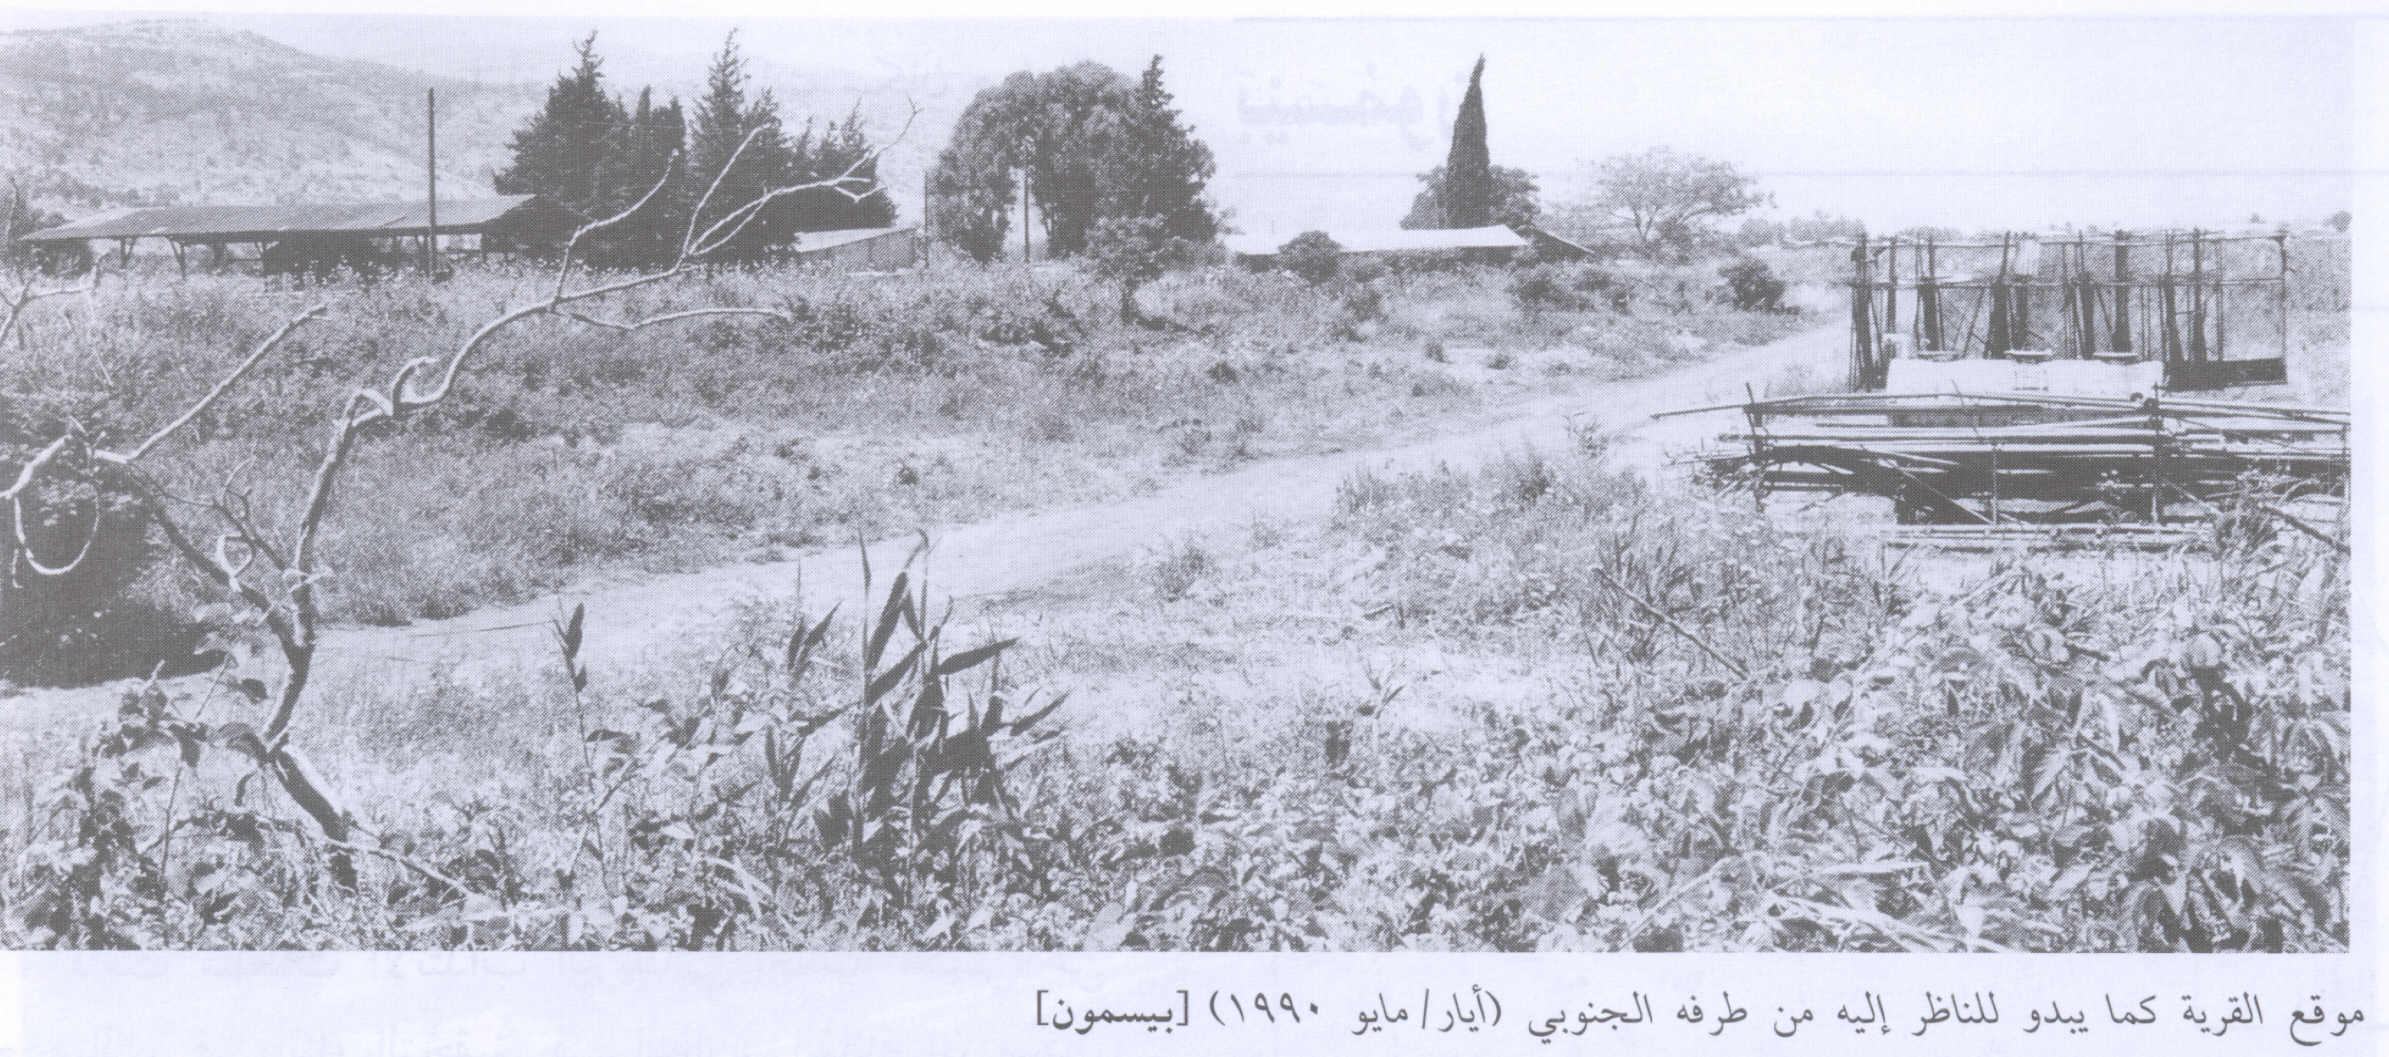 Baysamun - بيسمون : The Village Site In 1990